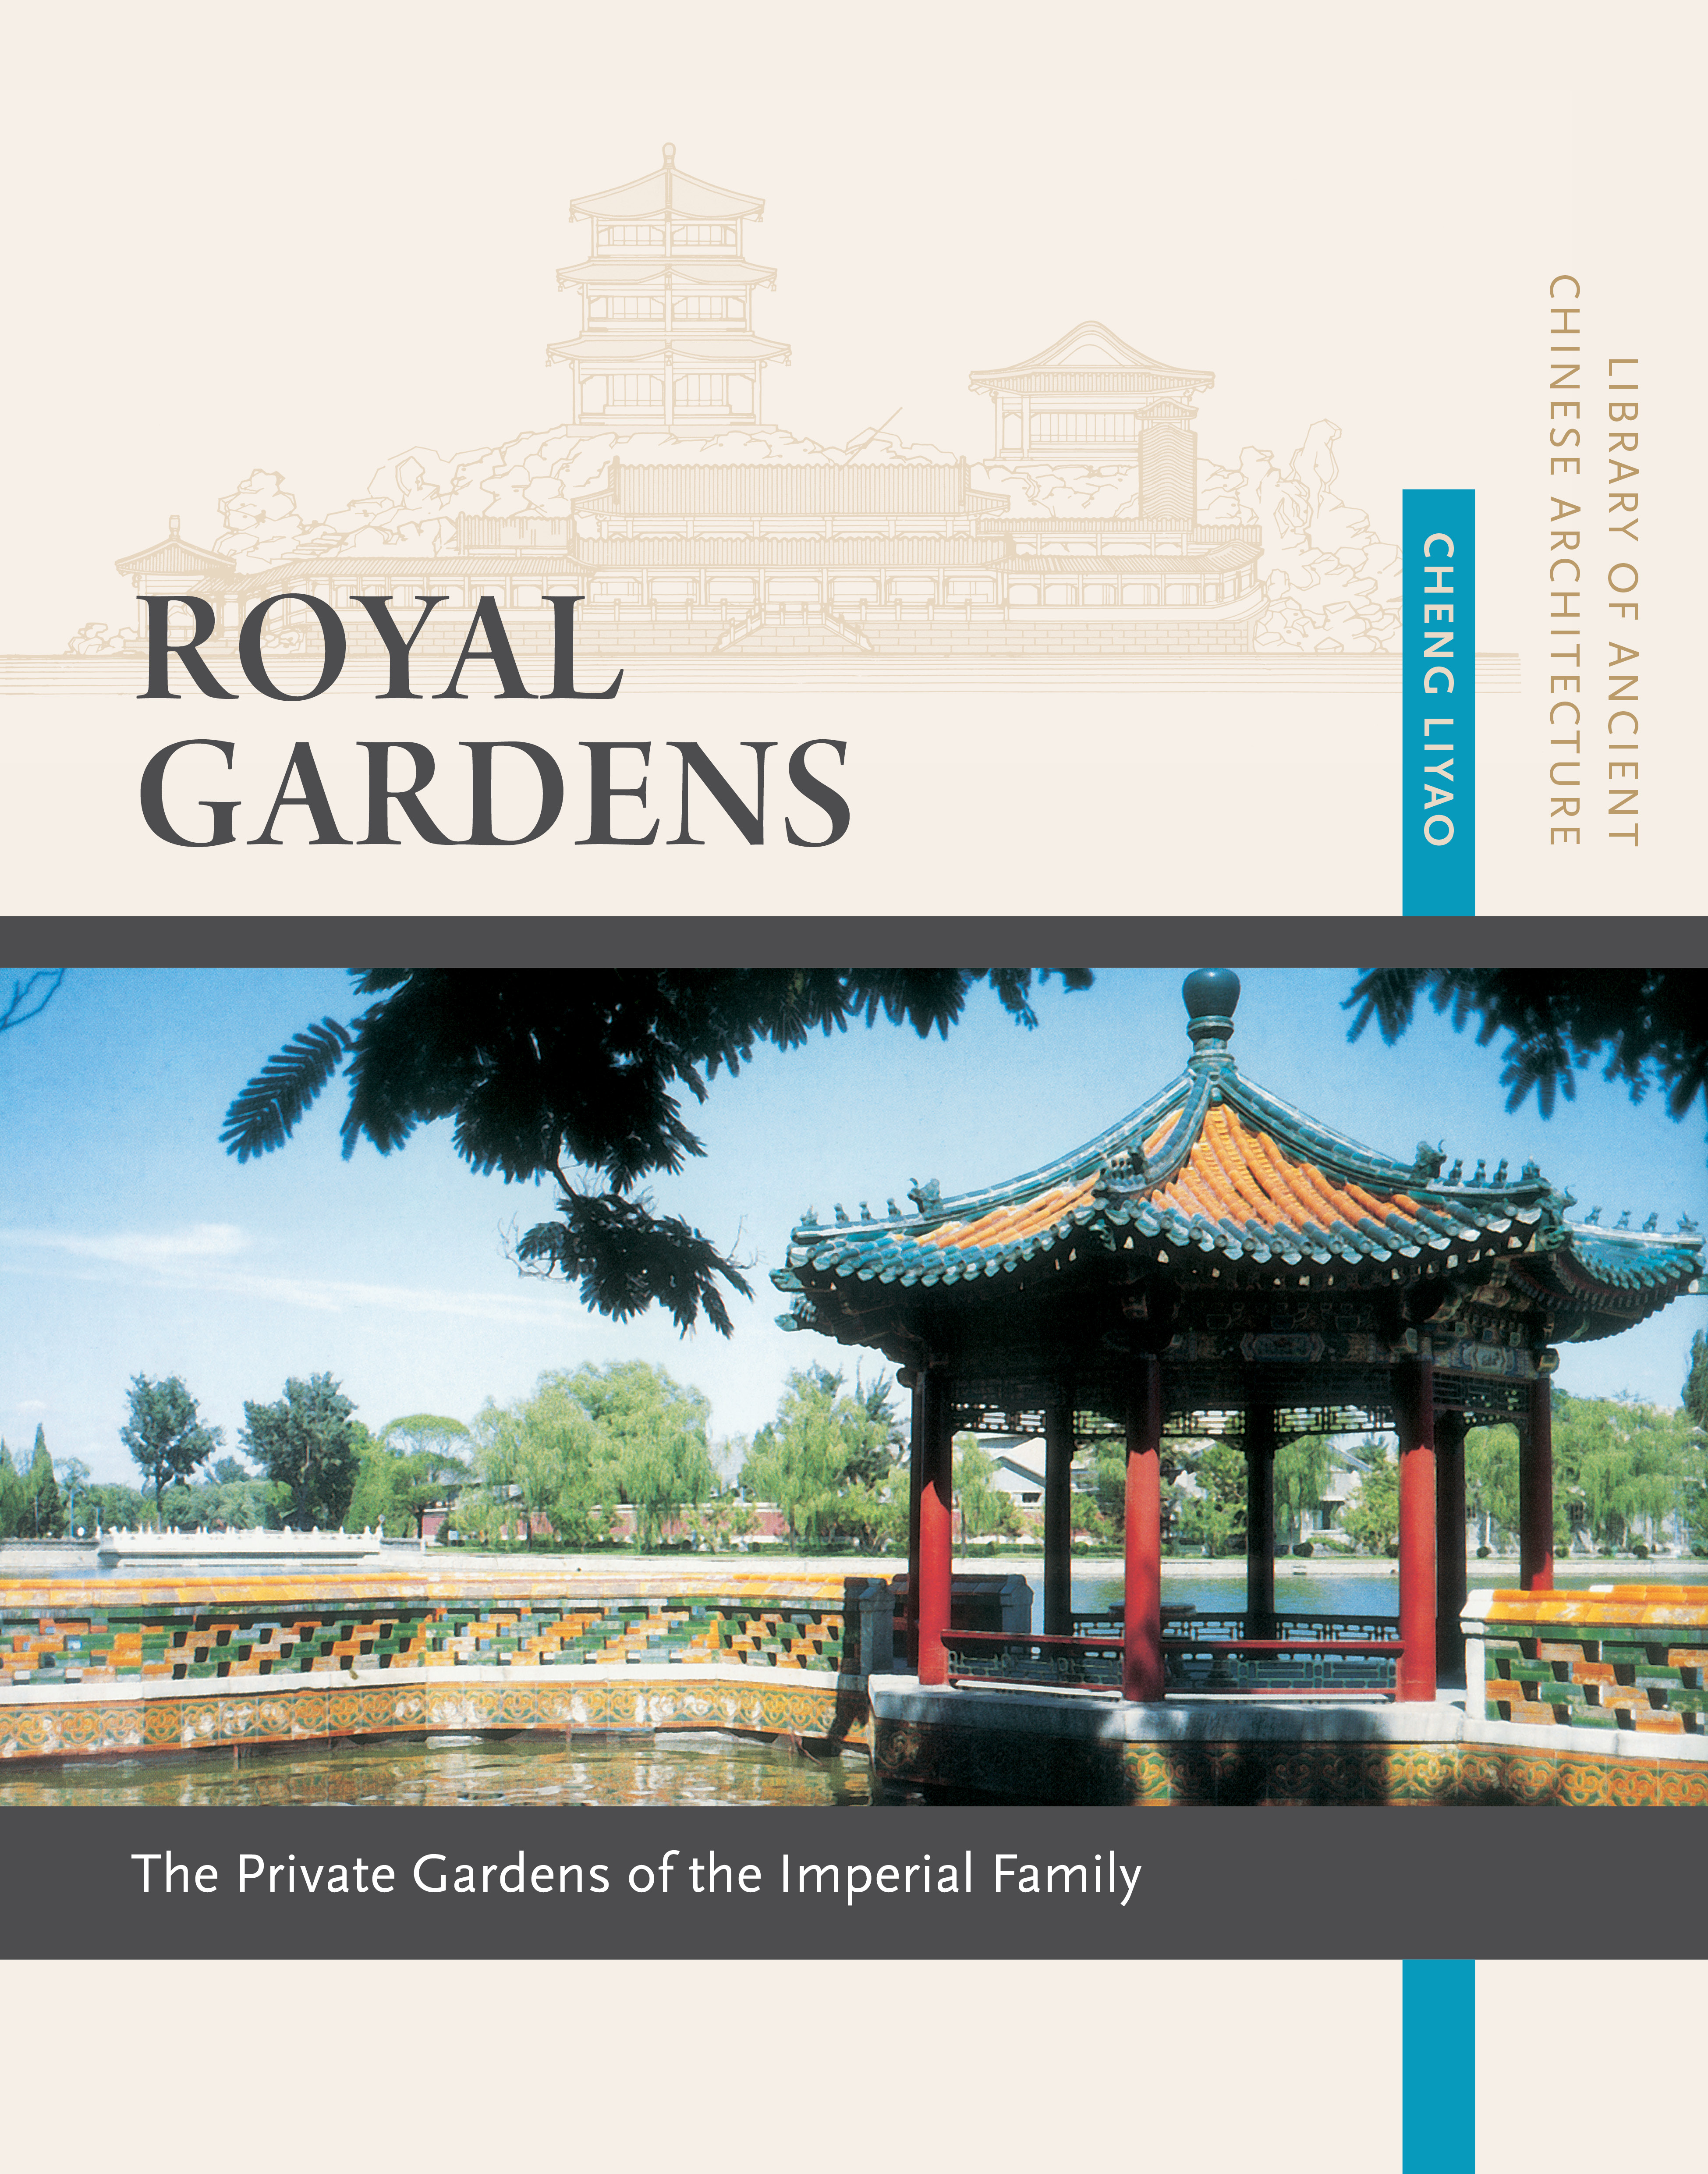 Royal Gardens: Private Gardens of the Imperial Family